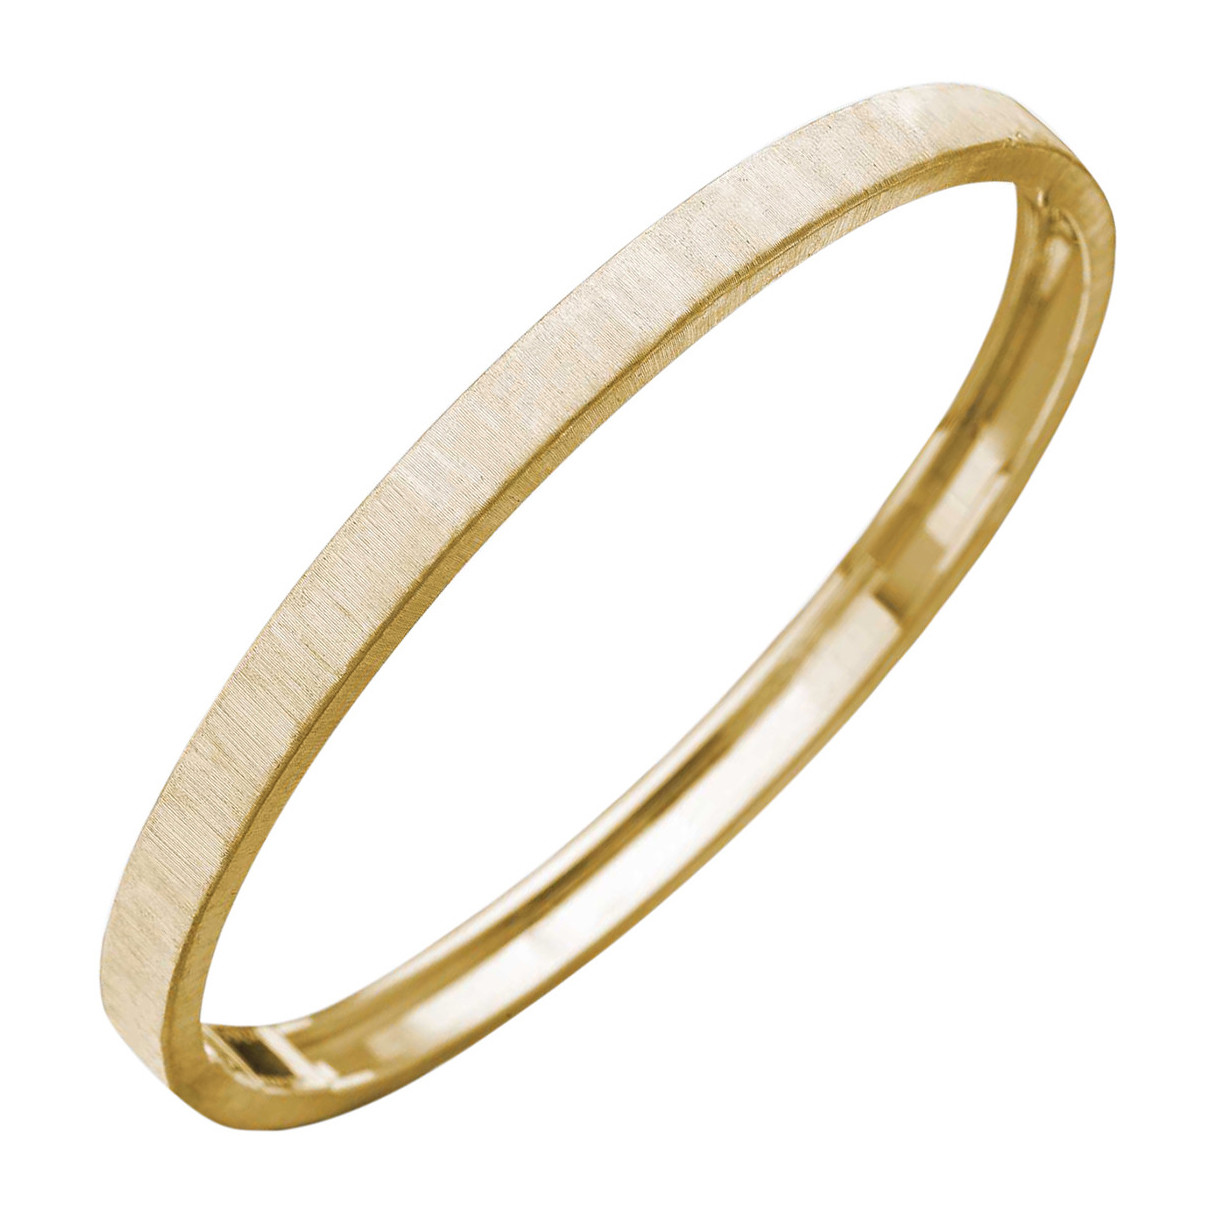 "Thin 18k Yellow Gold ""Macri"" Bangle"